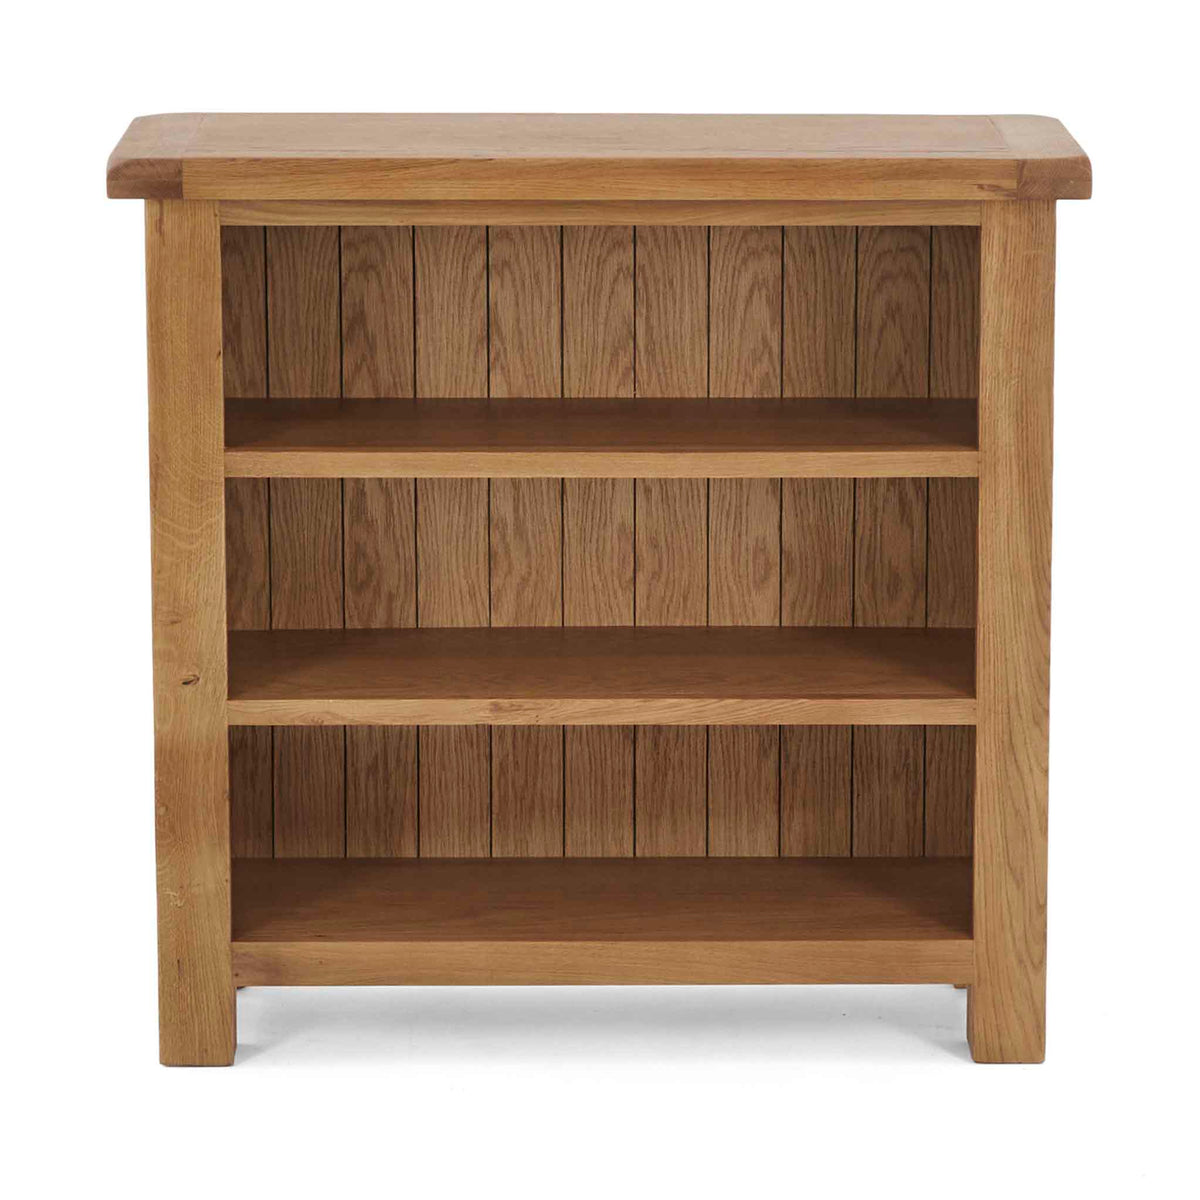 Zelah Oak Small Bookcase - Front view showing top